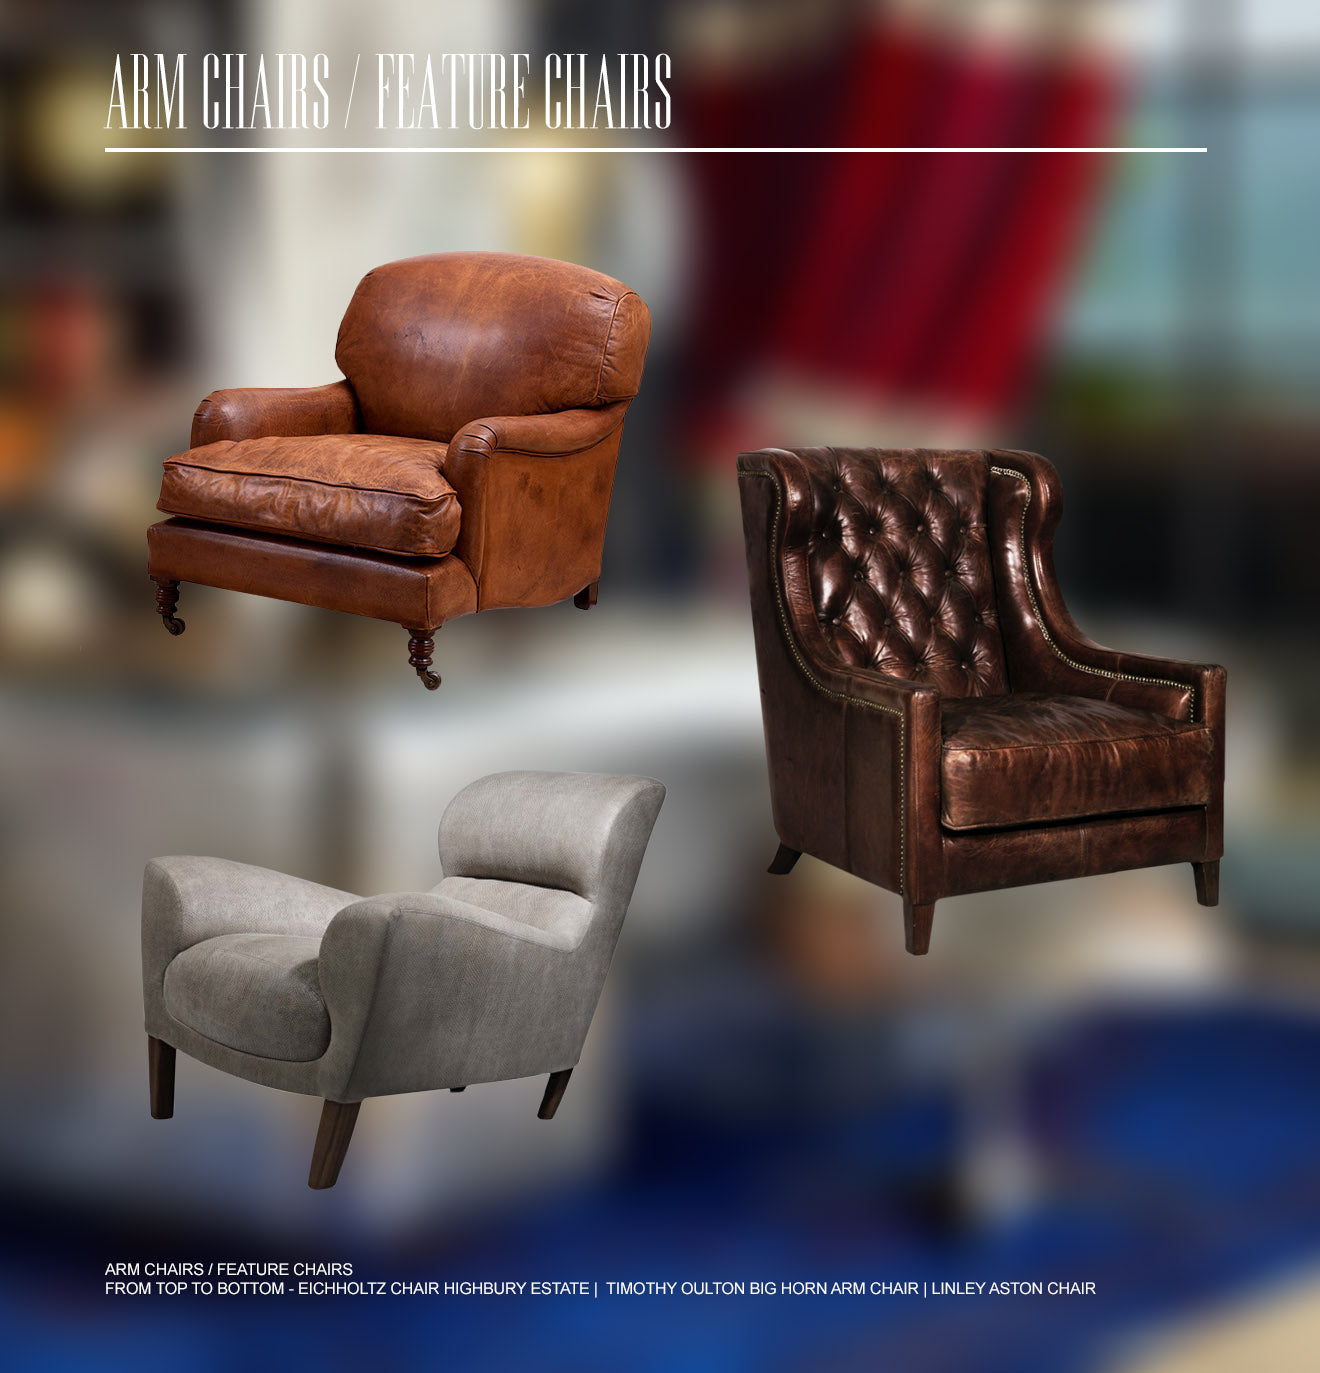 English Eccentric Armchairs and Feature Chair inspiration